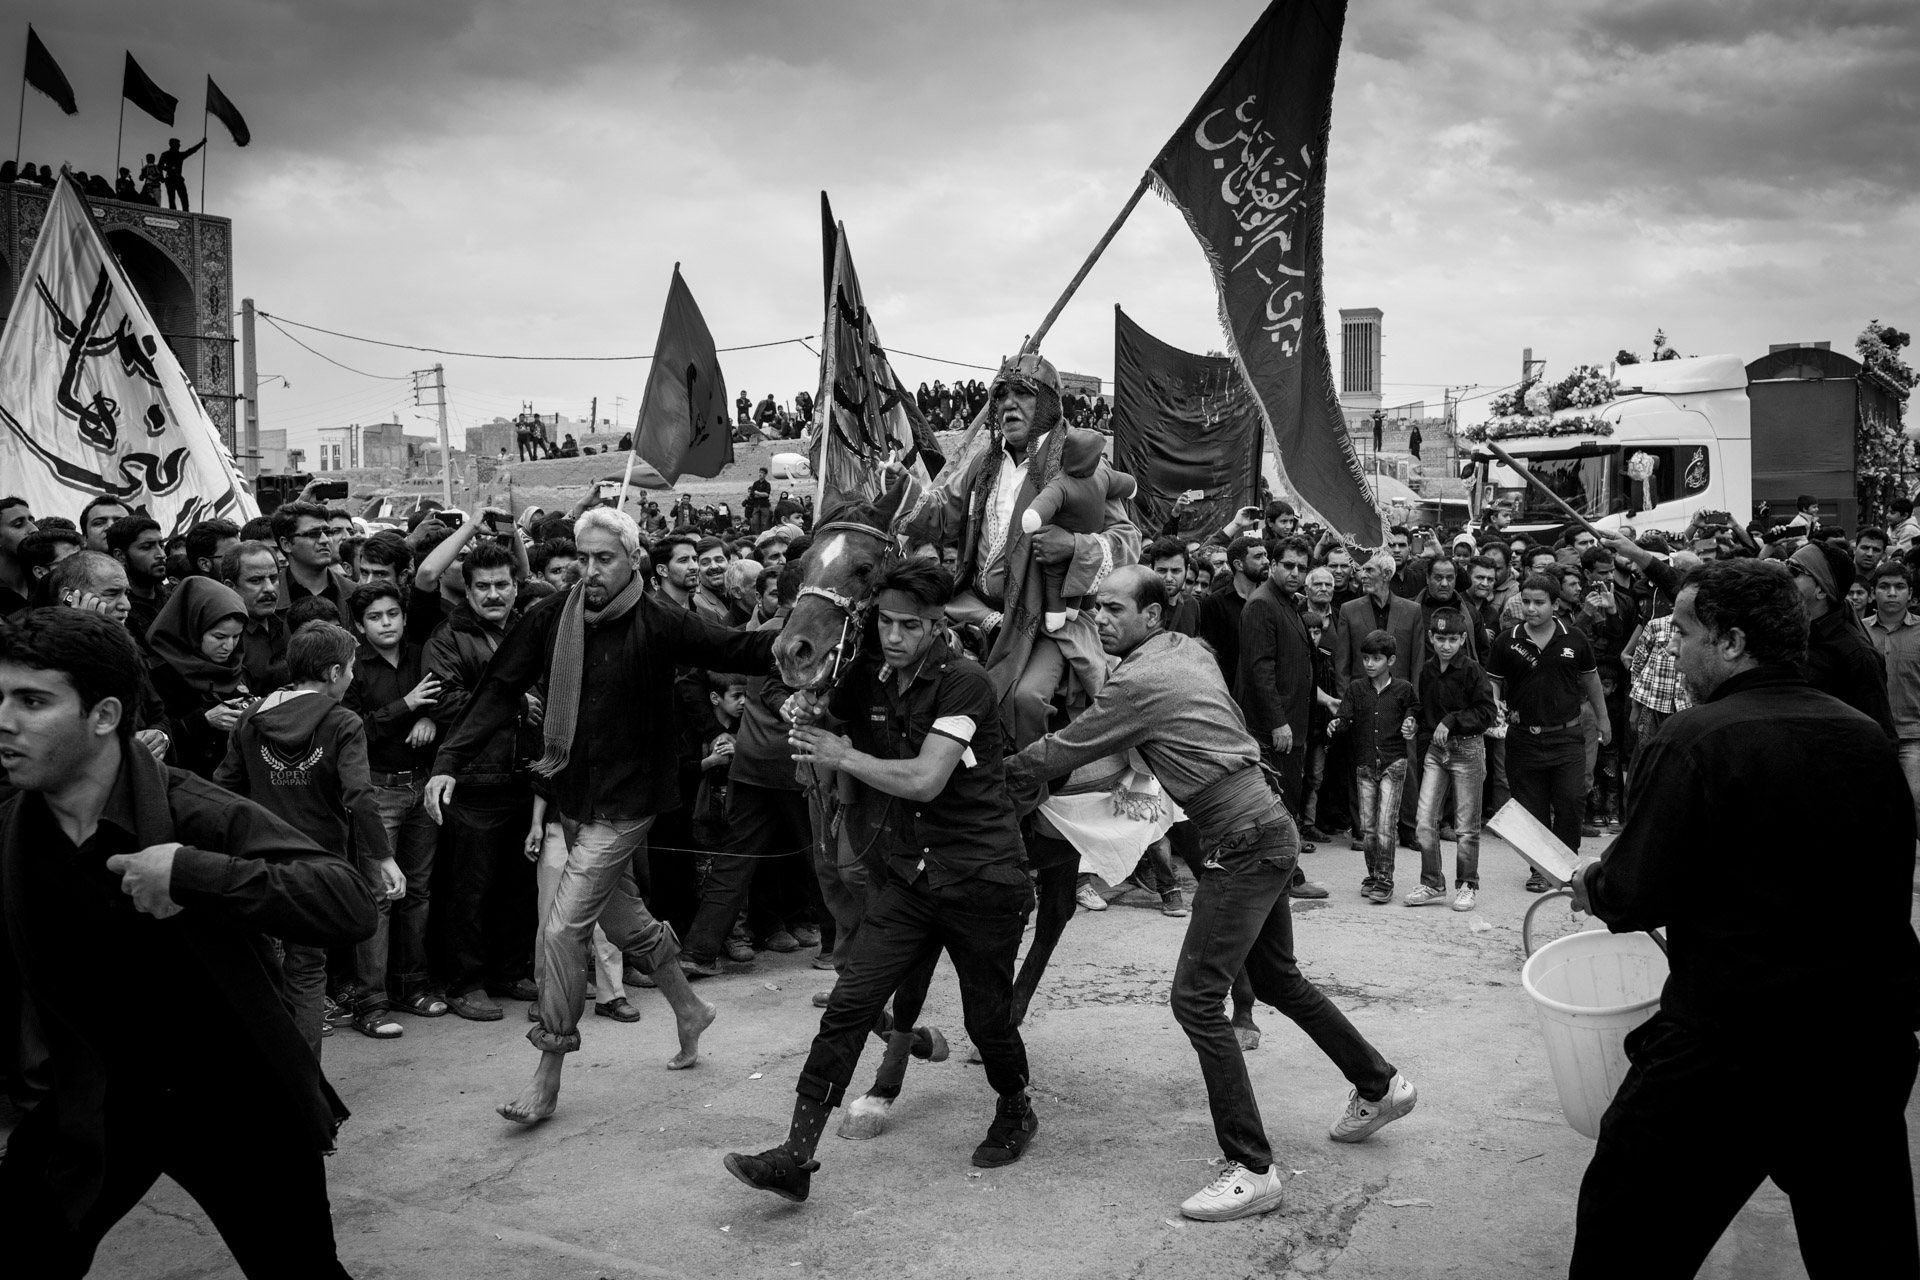 Men are pushing a horse through a crowd of people during the re-enactment of the battle of Karbala.